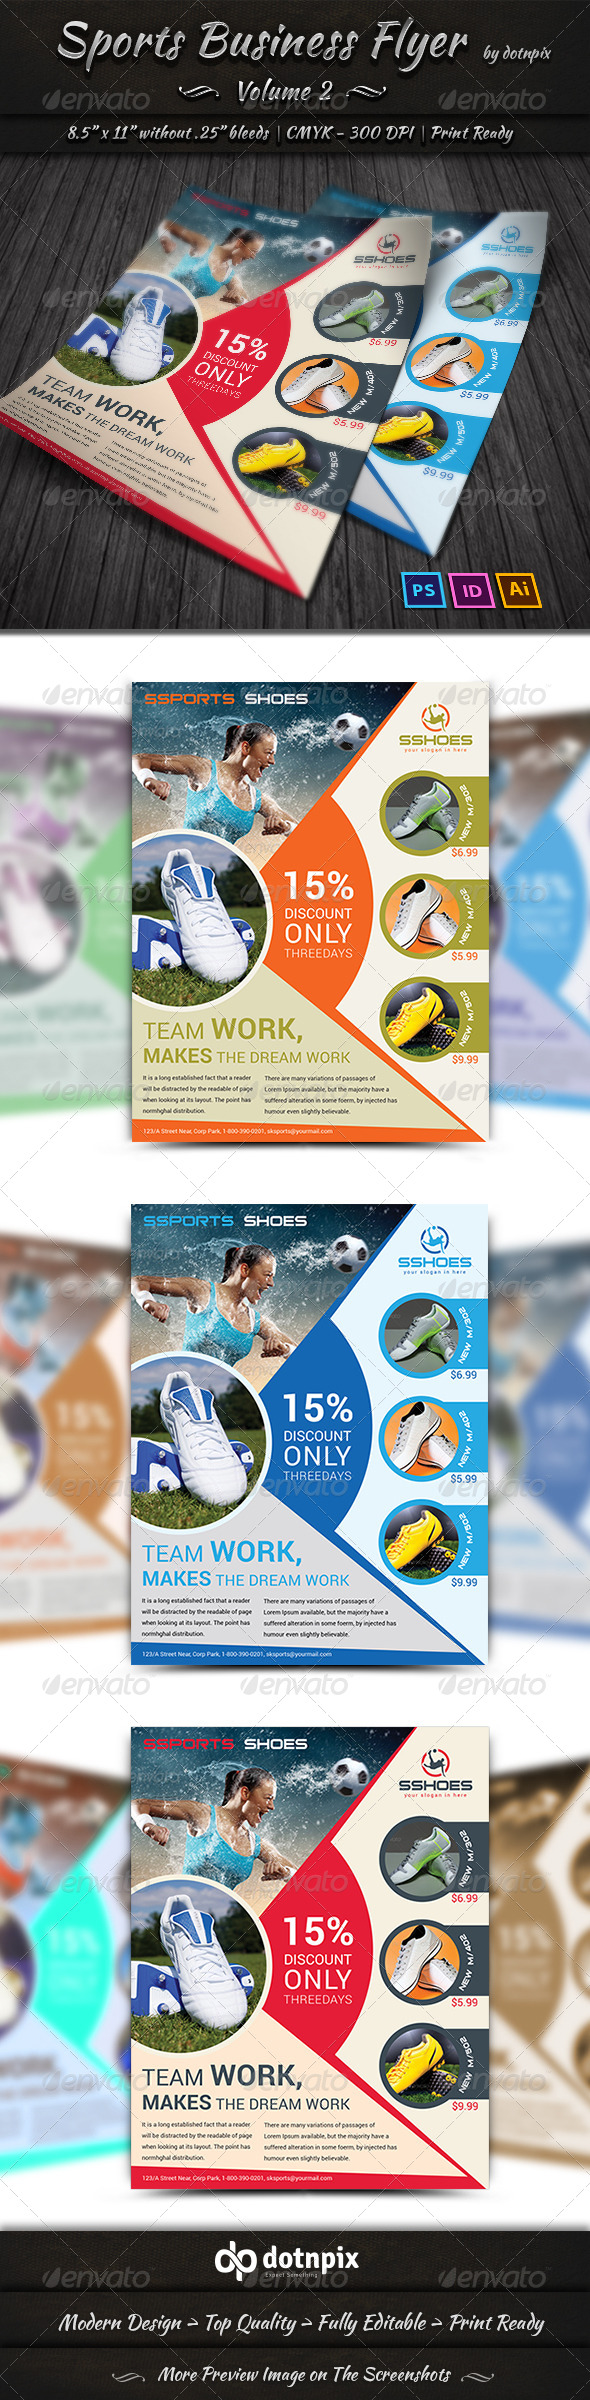 GraphicRiver Sports Business Flyer Volume 2 6499575